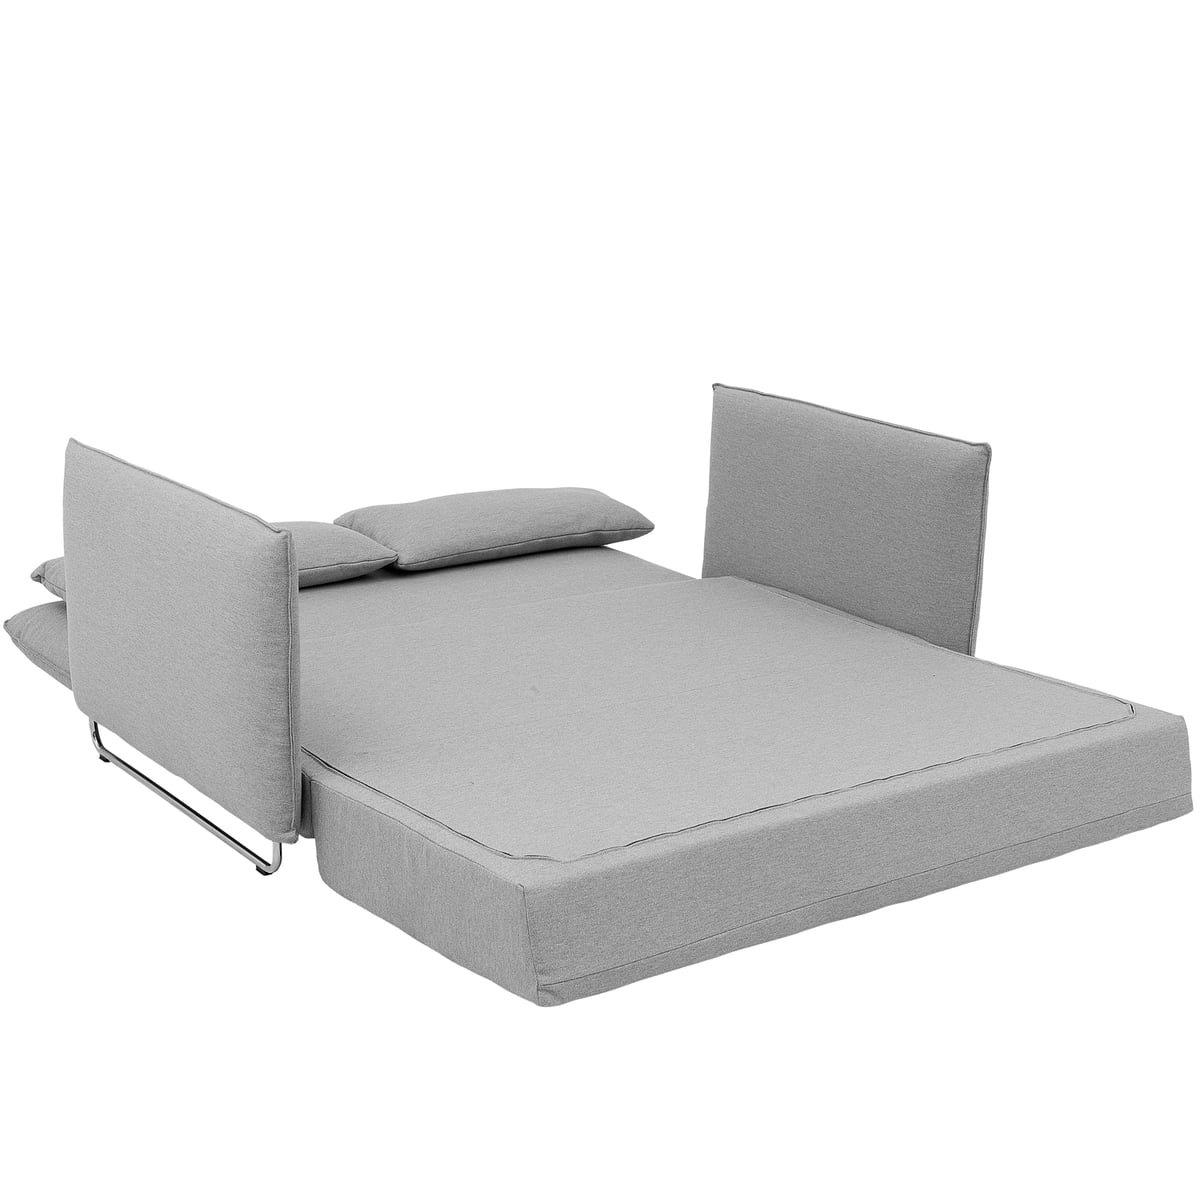 Softline   Cord Sofa, Vision Light Grey (445)